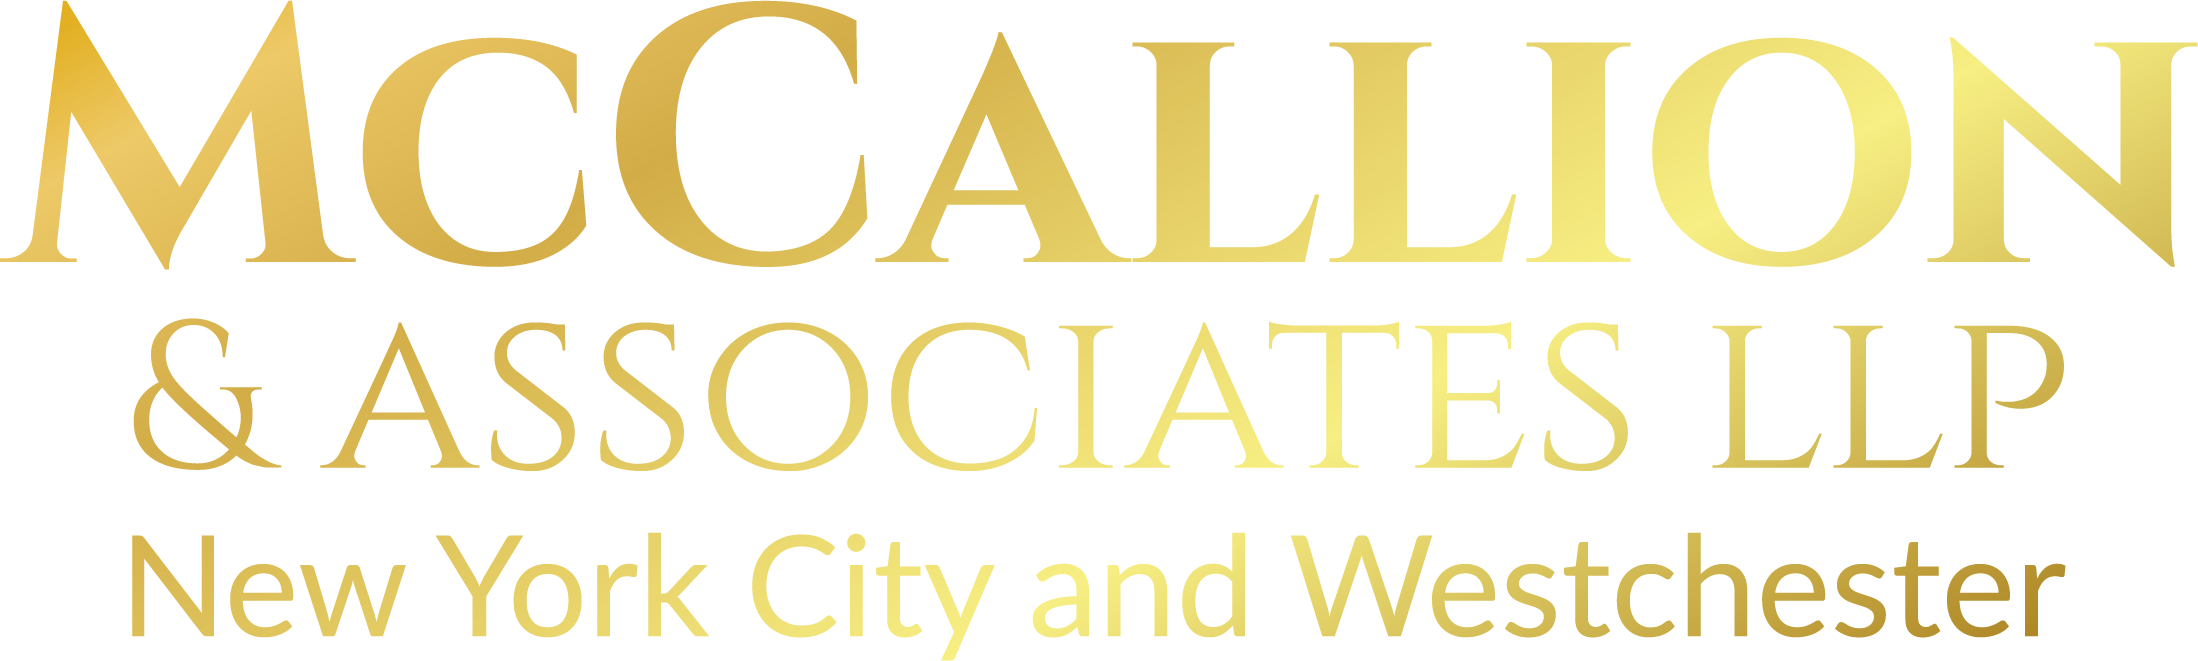 McCallion and Associates Logo